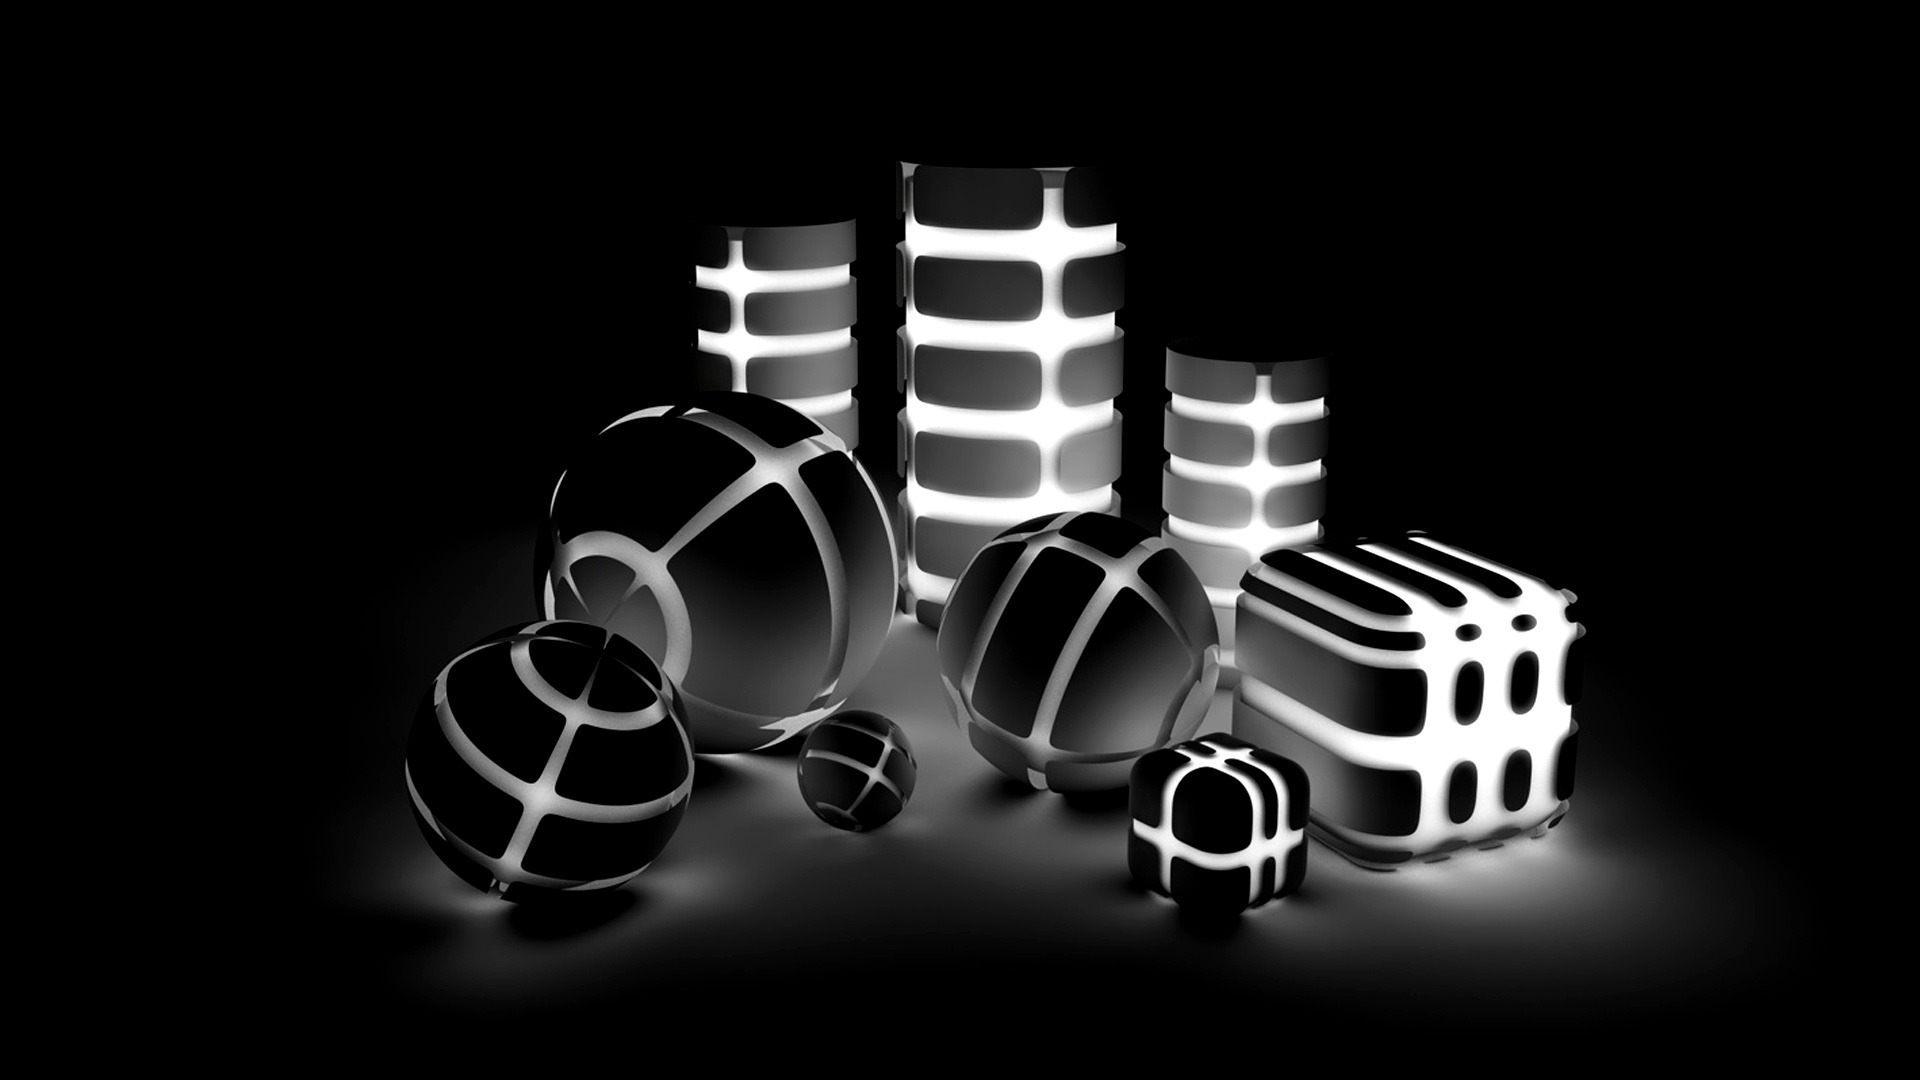 Wallpapers Black and White HD Wallpaper 3D Wallpapers Black and White 1920x1080